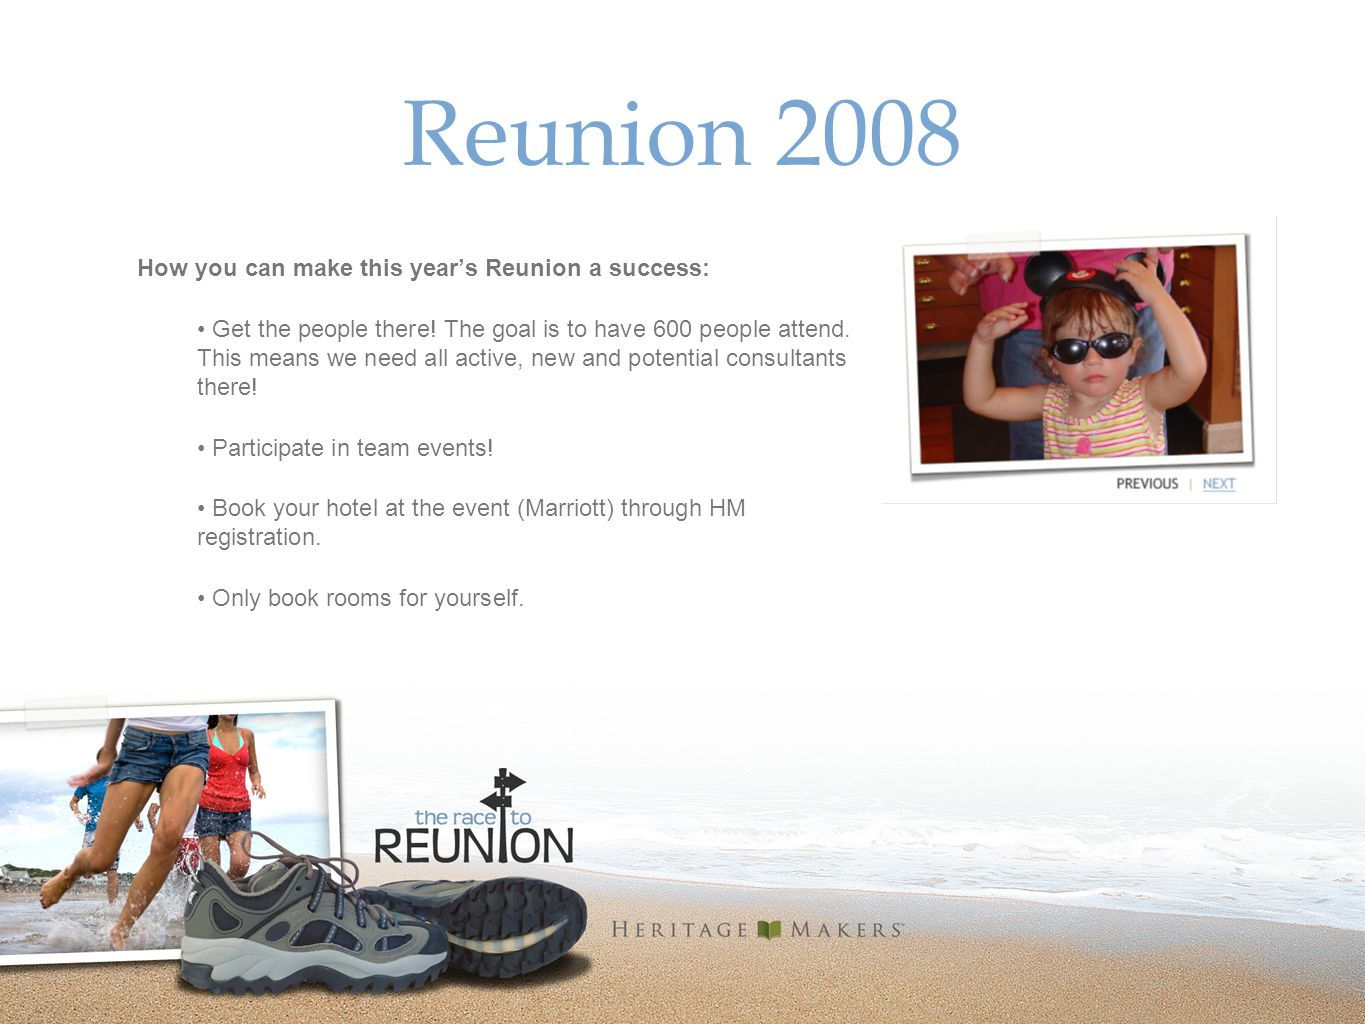 Reunion 2008 How you can make this years Reunion a success: Get the people there.